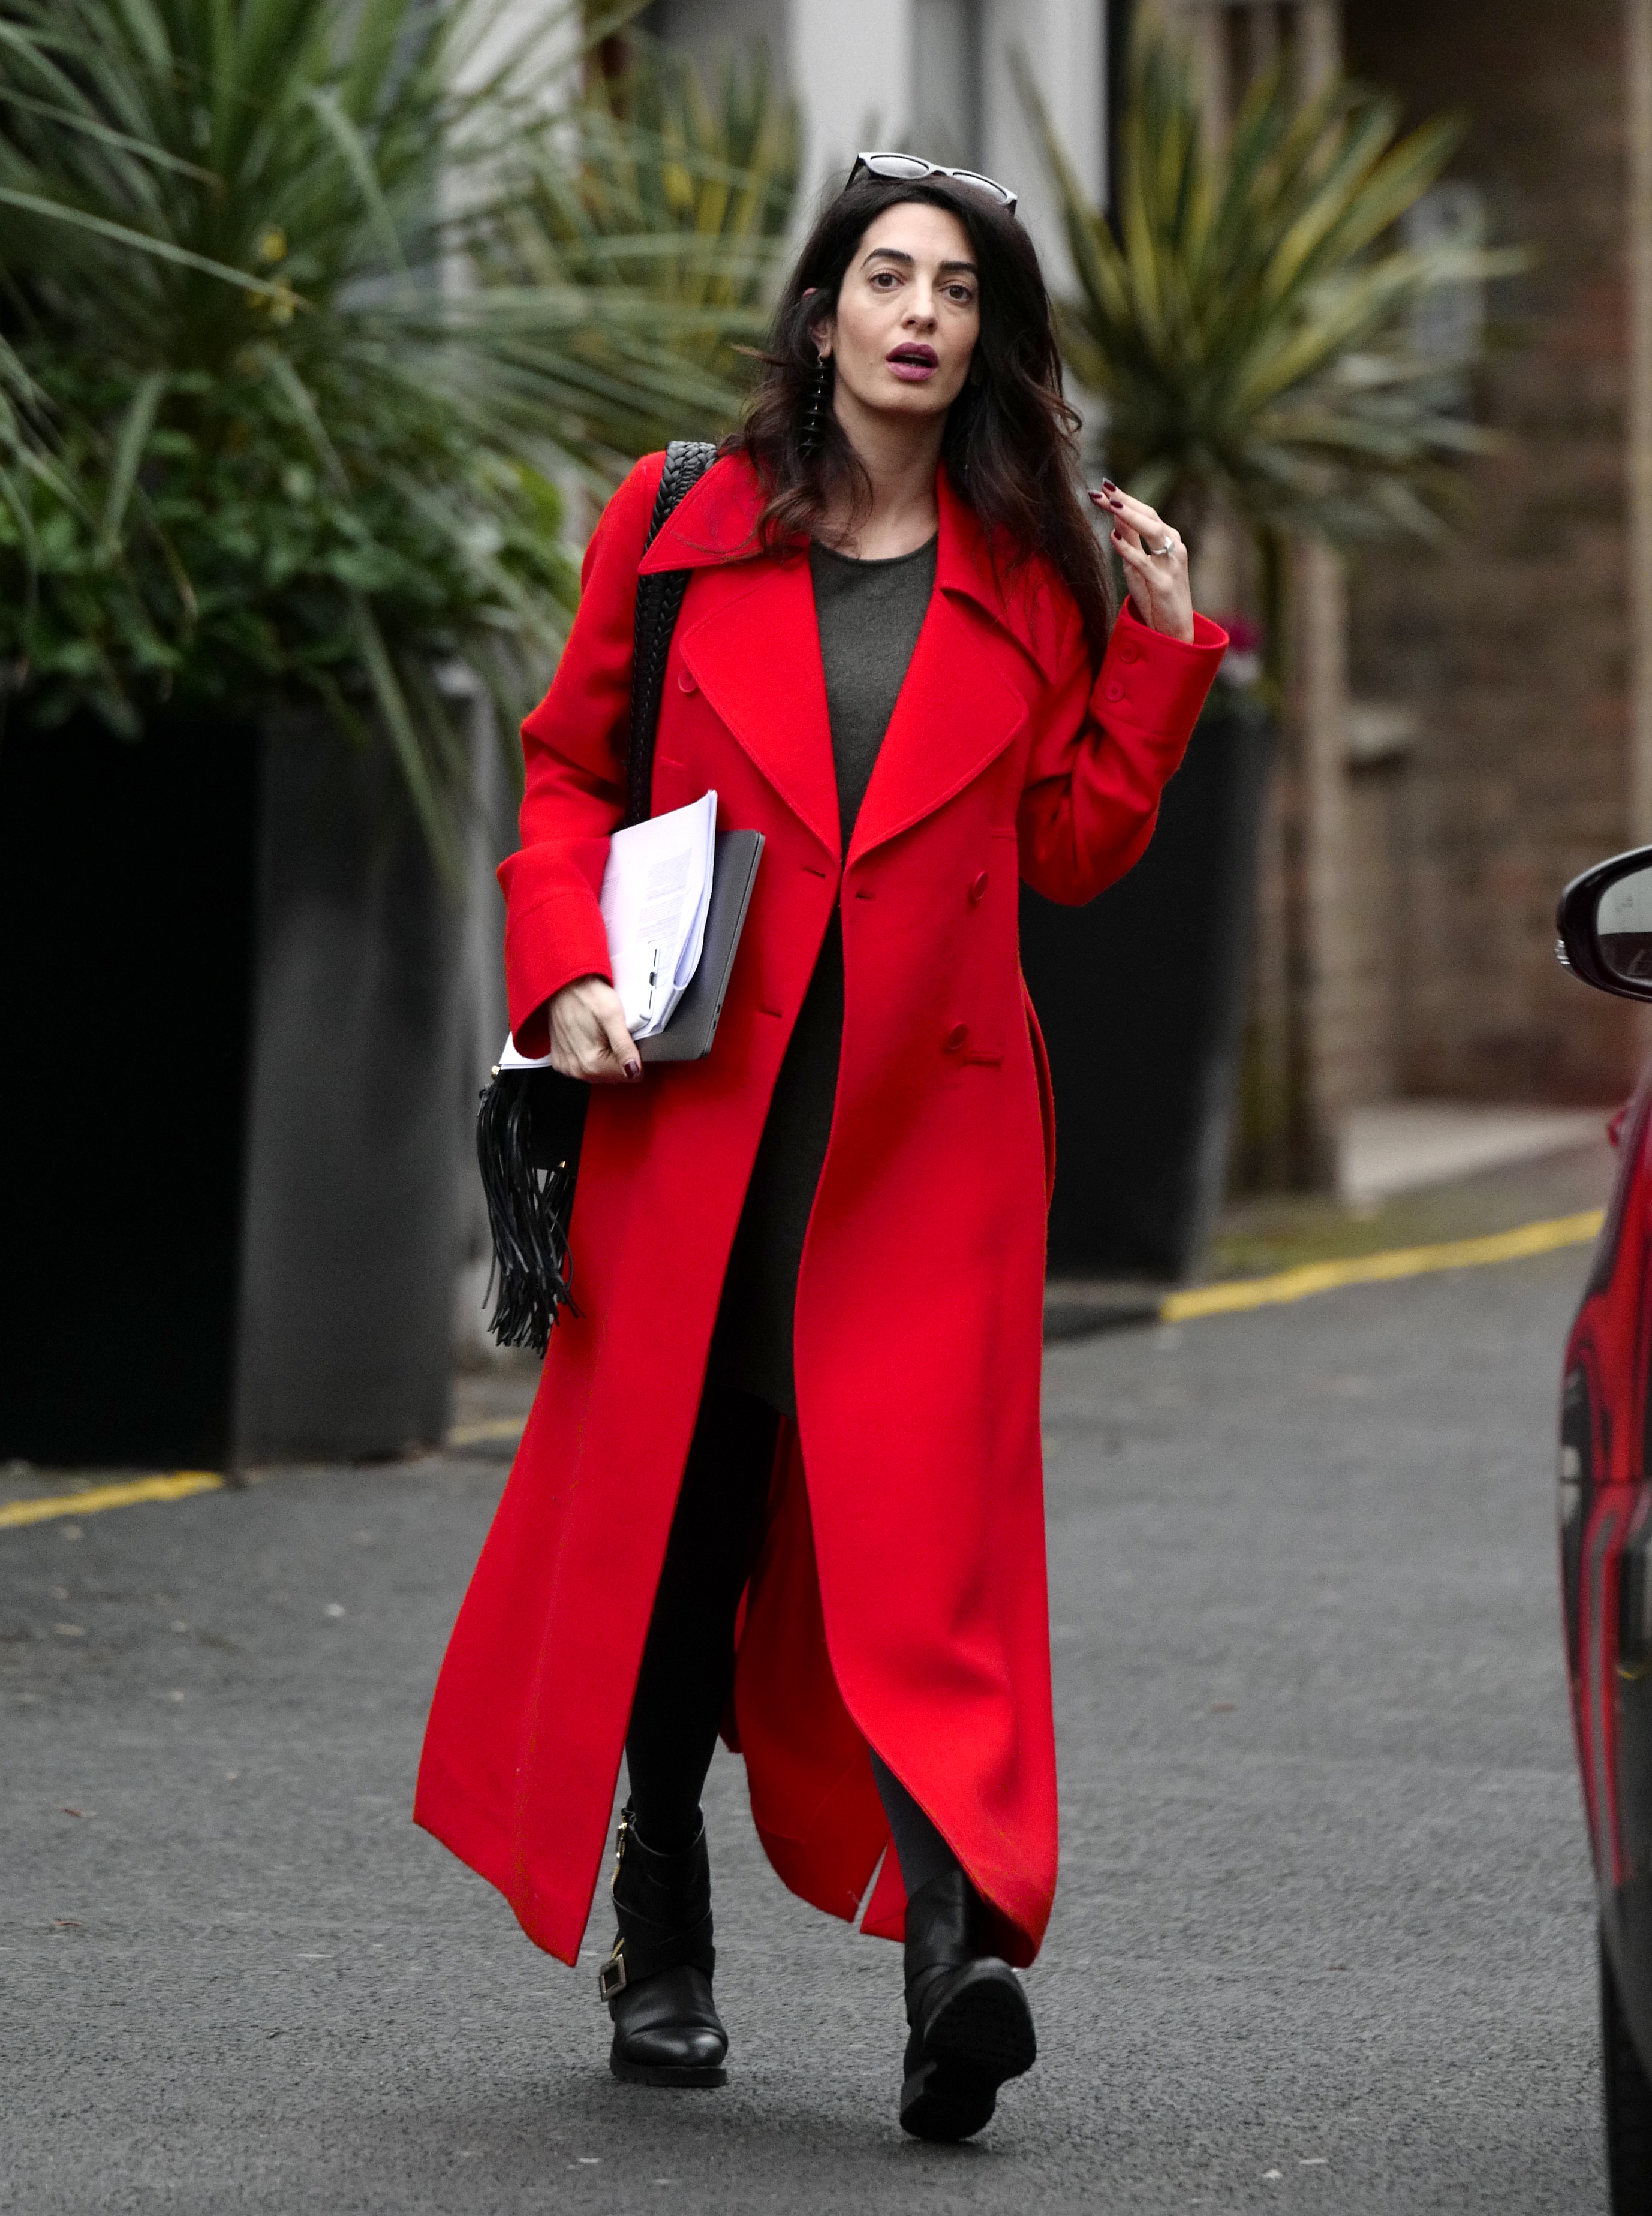 EXCLUSIVE Amal Clooney Reveals a Hint of her Baby Bump Under Red Coat